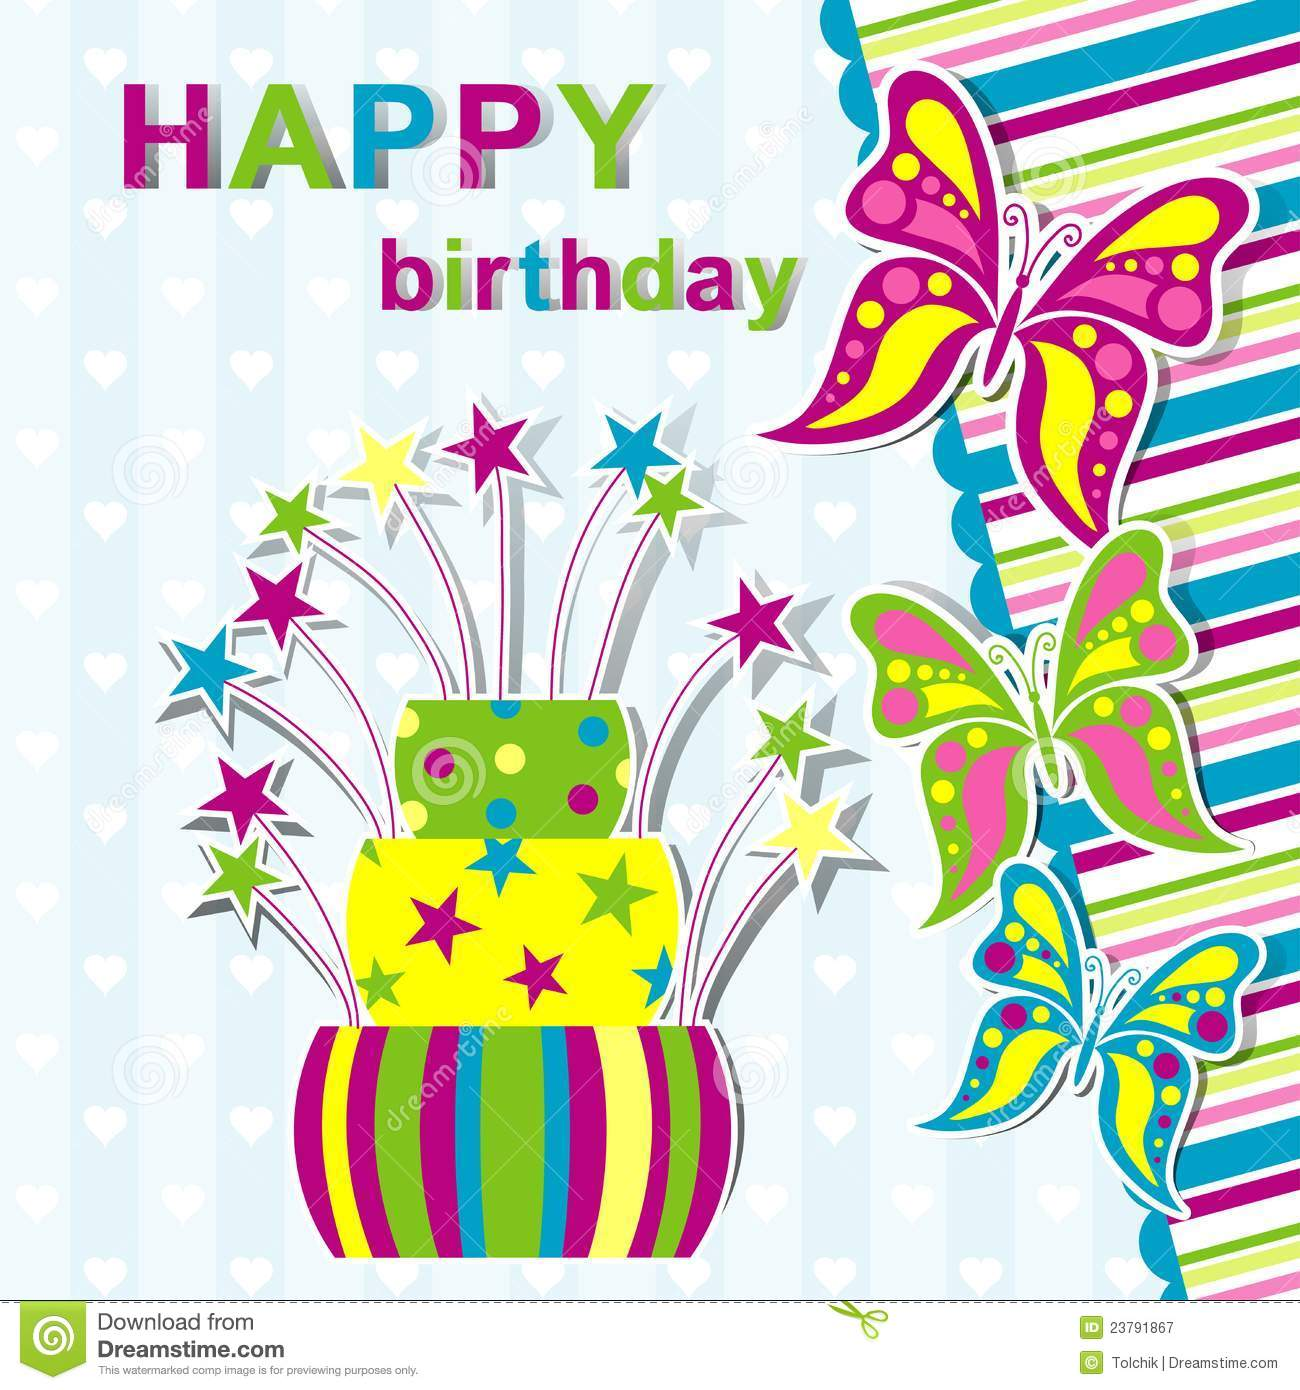 Birthday Card Template. Free Birthday Card Templates. View Original ...: fatherday2014.com/tags/free-birthday-card-templates